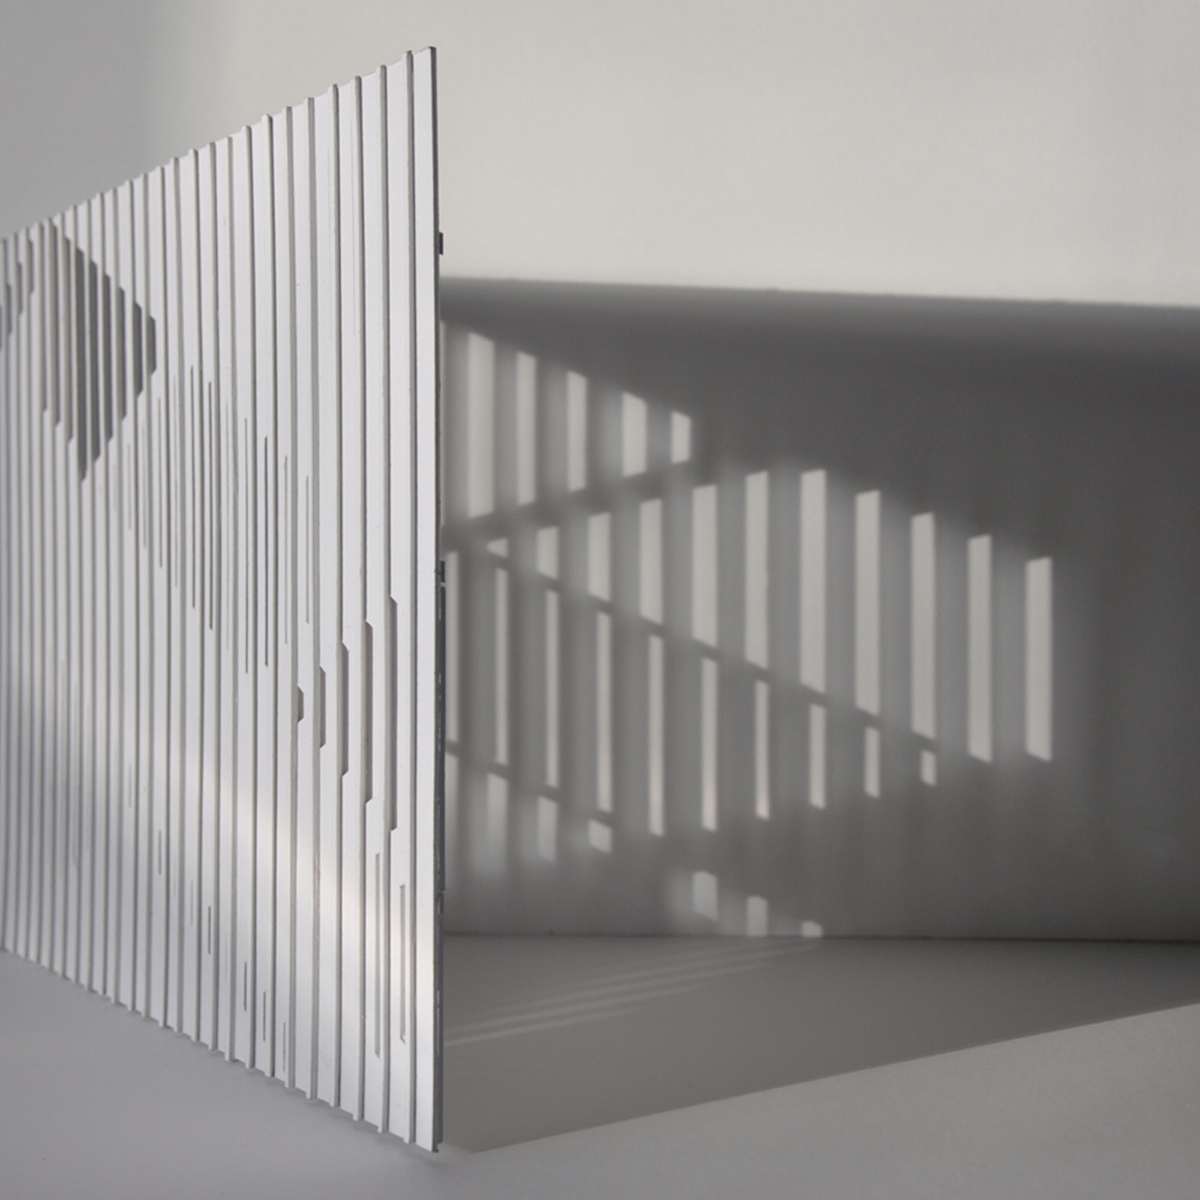 Study for natural lighting according to the cutting direction on the wooden laths. Interior light grid. (Photo: Jérôme Aich)